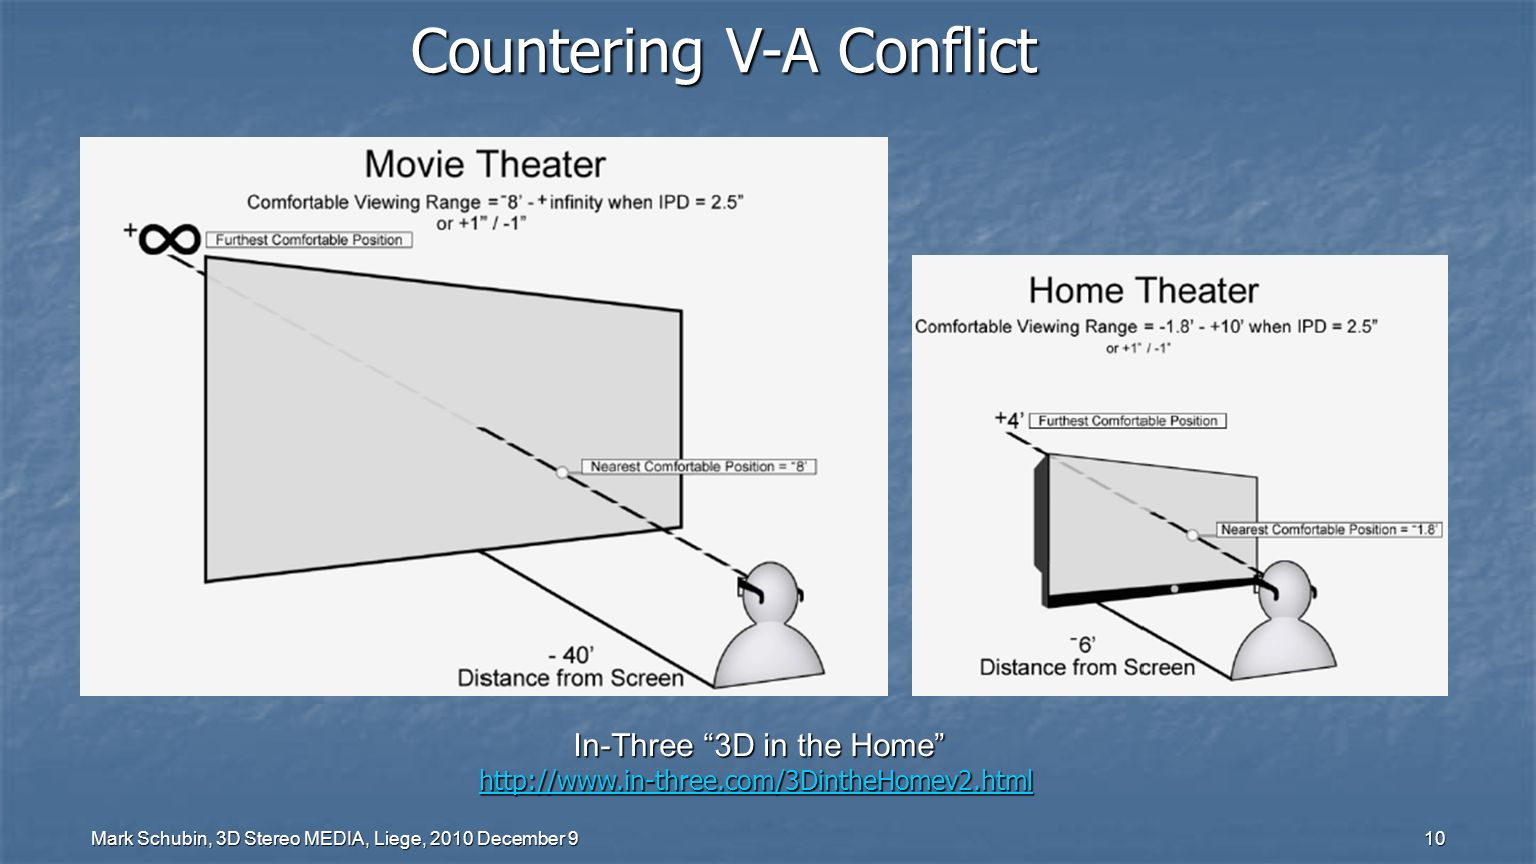 Mark Schubin, 3D Stereo MEDIA, Liege, 2010 December 9 10 Countering V-A Conflict In-Three 3D in the Home http://www.in-three.com/3DintheHomev2.html